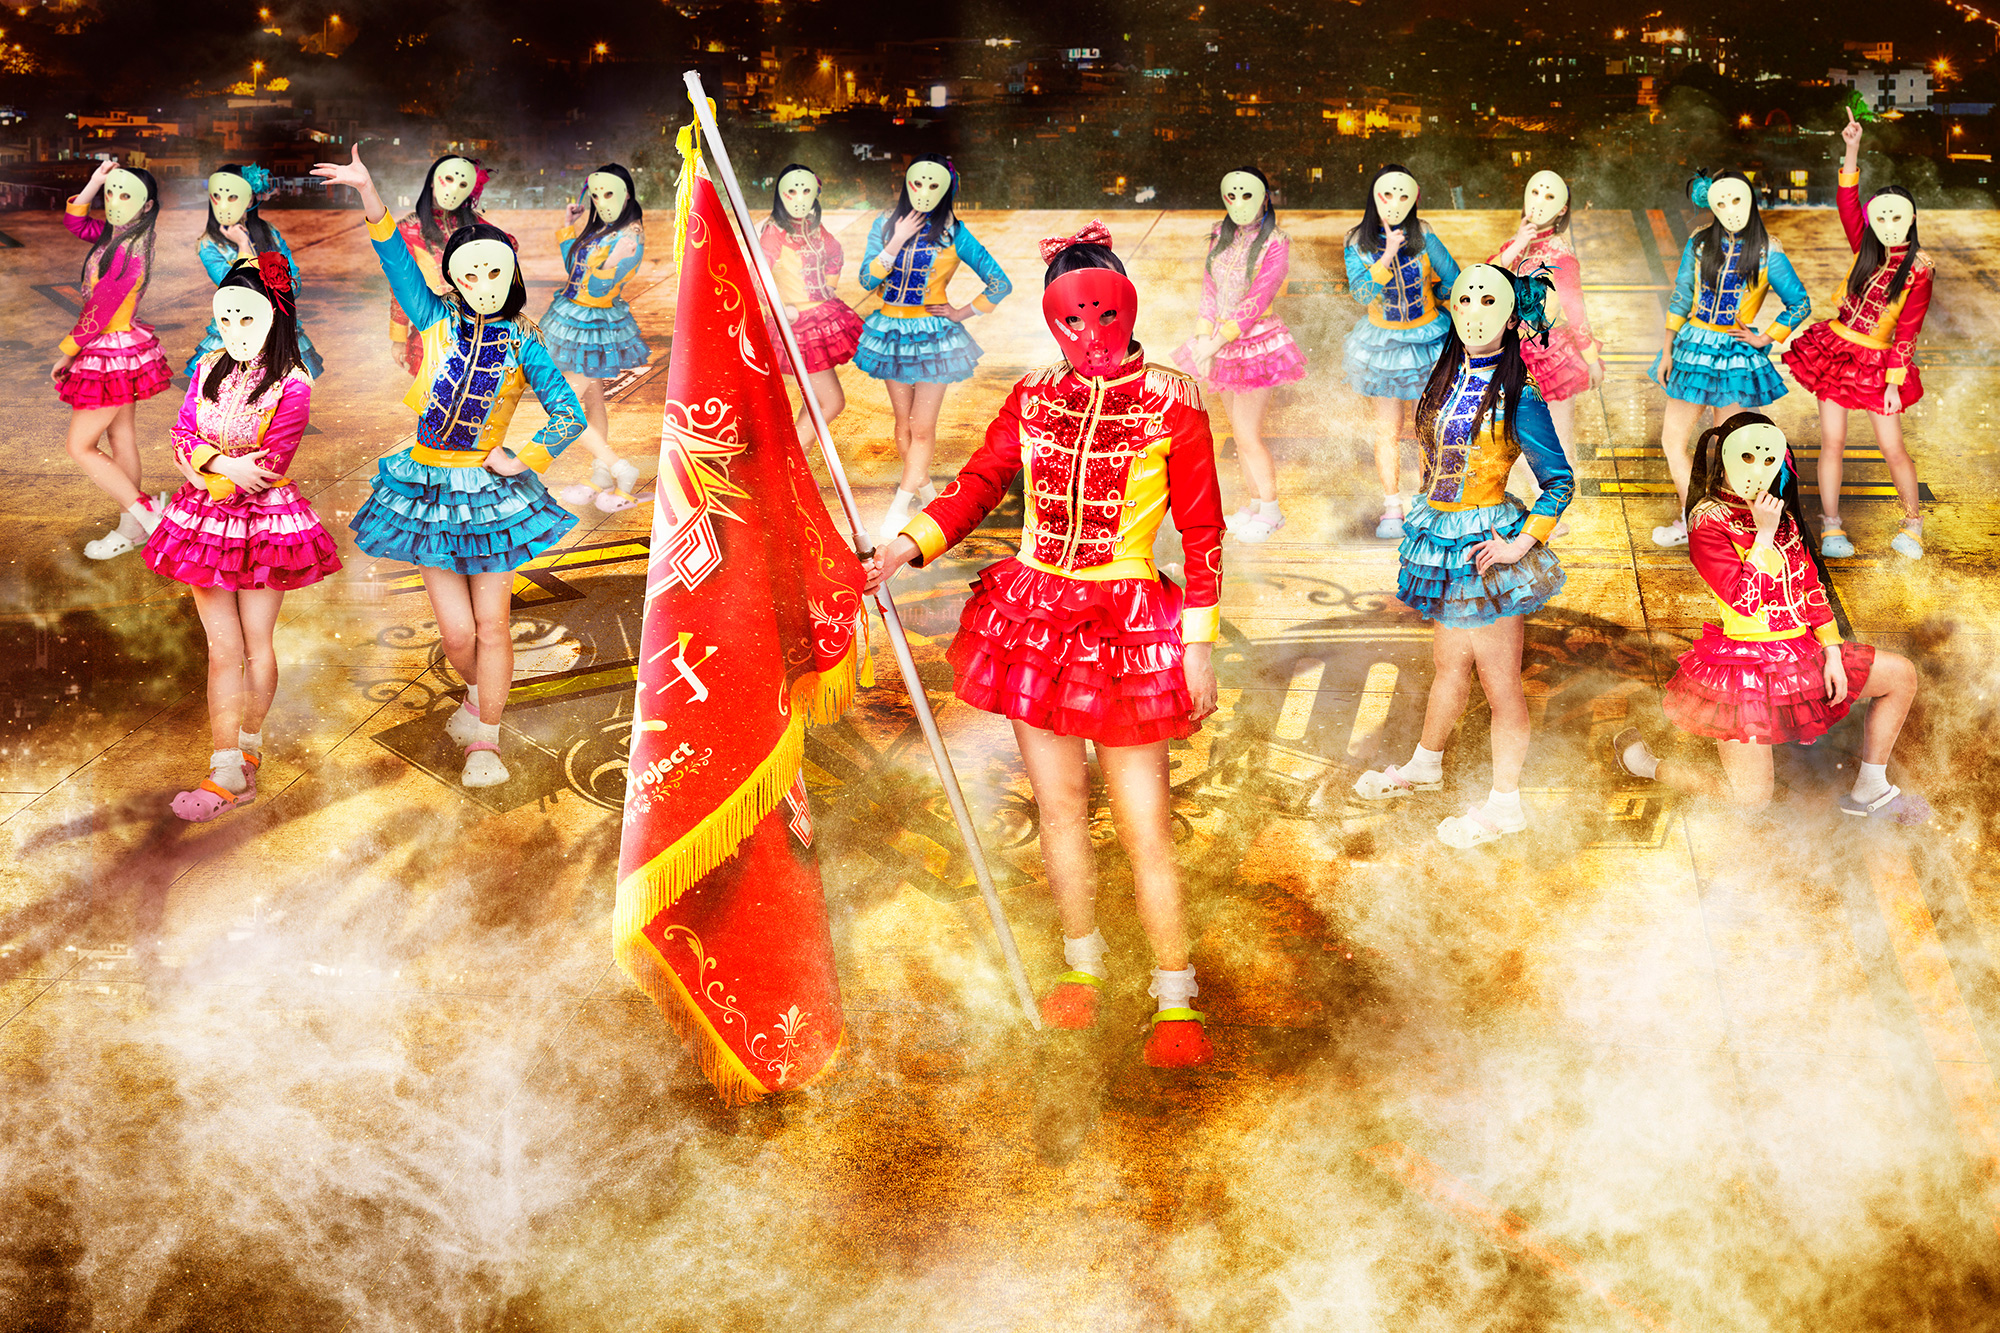 NekoPOP-Kamen-Joshi-3-million-Facebook-announce-1